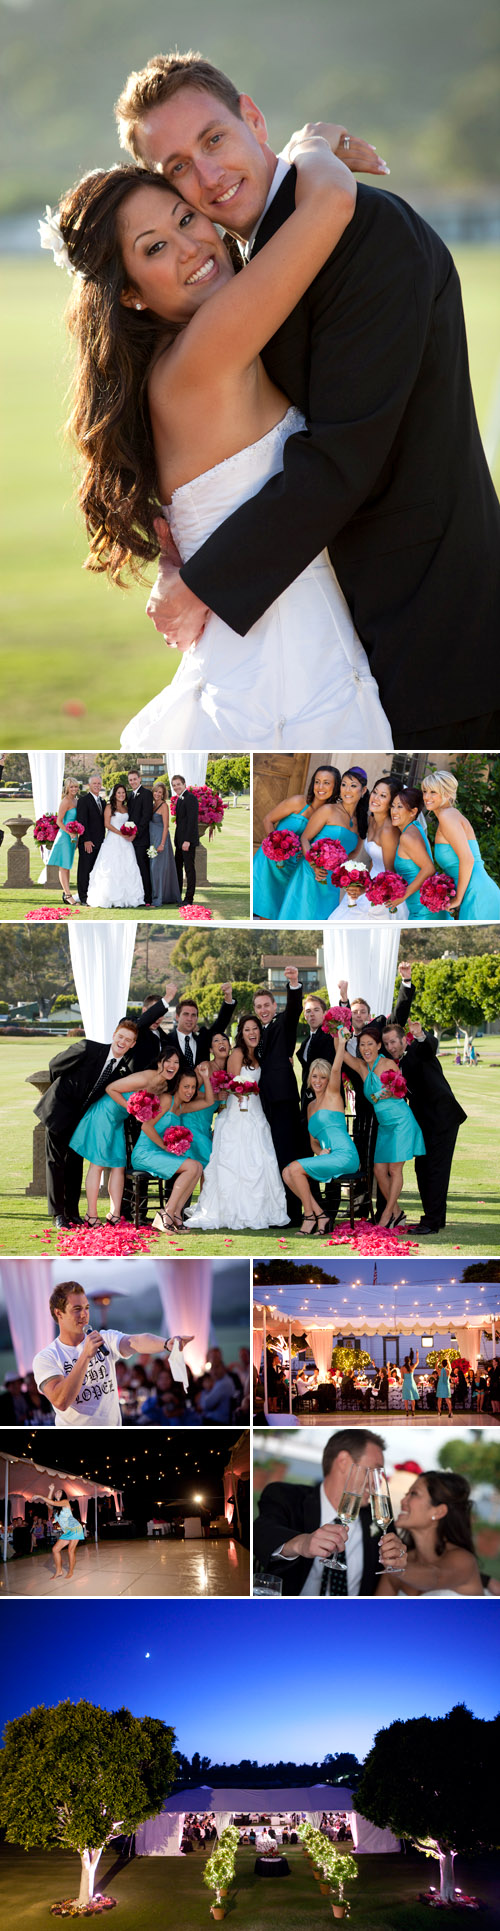 Fuchsia, Turquoise, Black and White Summer Wedding at the Santa ...